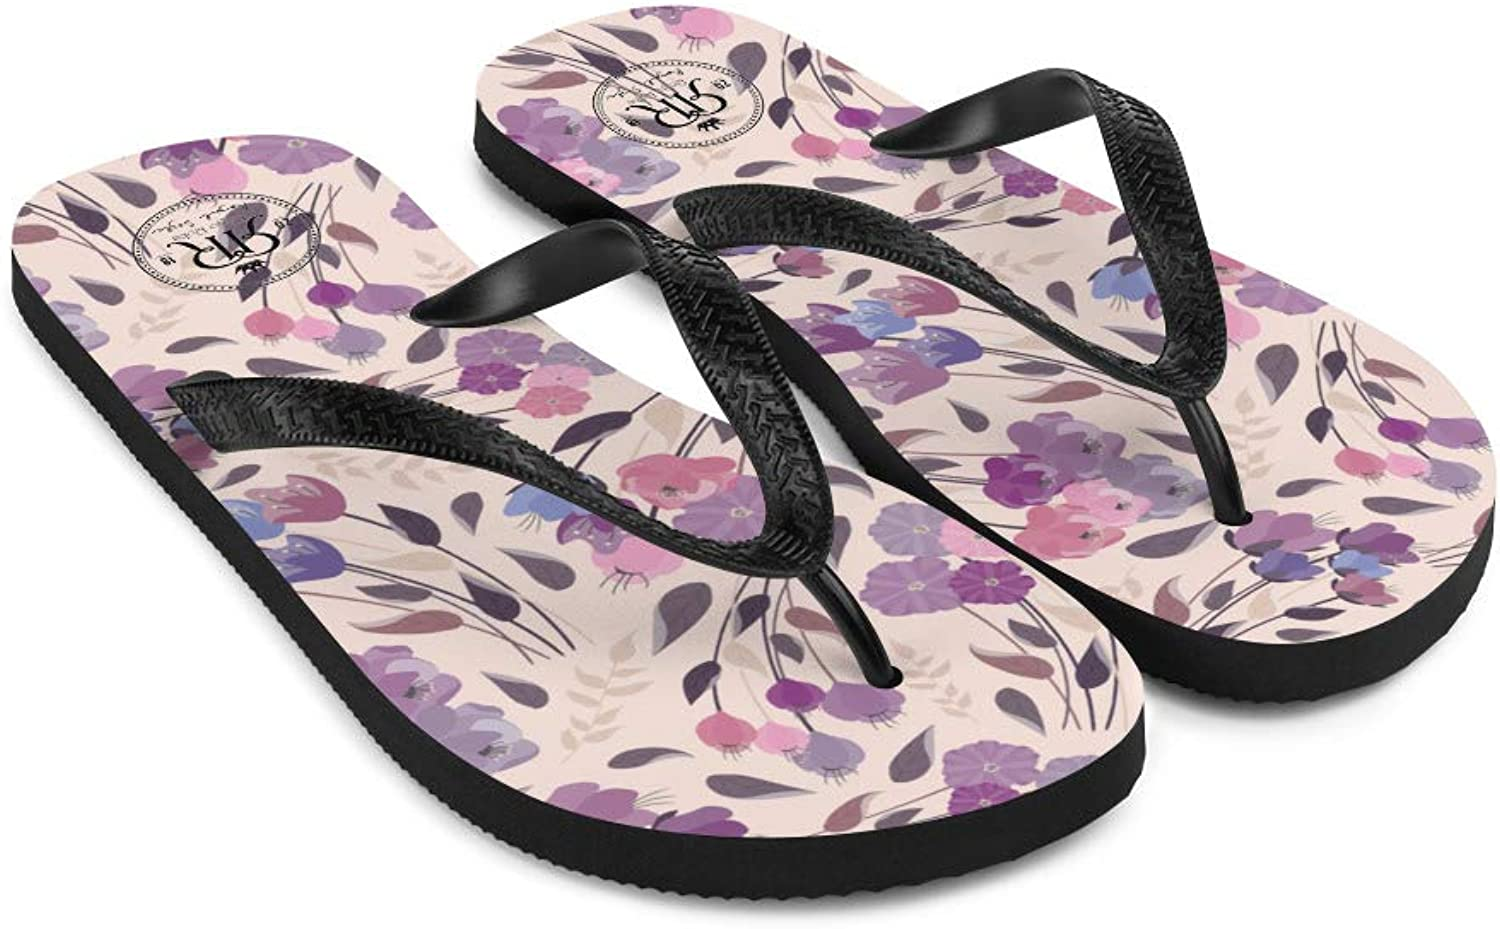 Regio Roba Comfort Style Summer Flip-Flops Sandals for Women